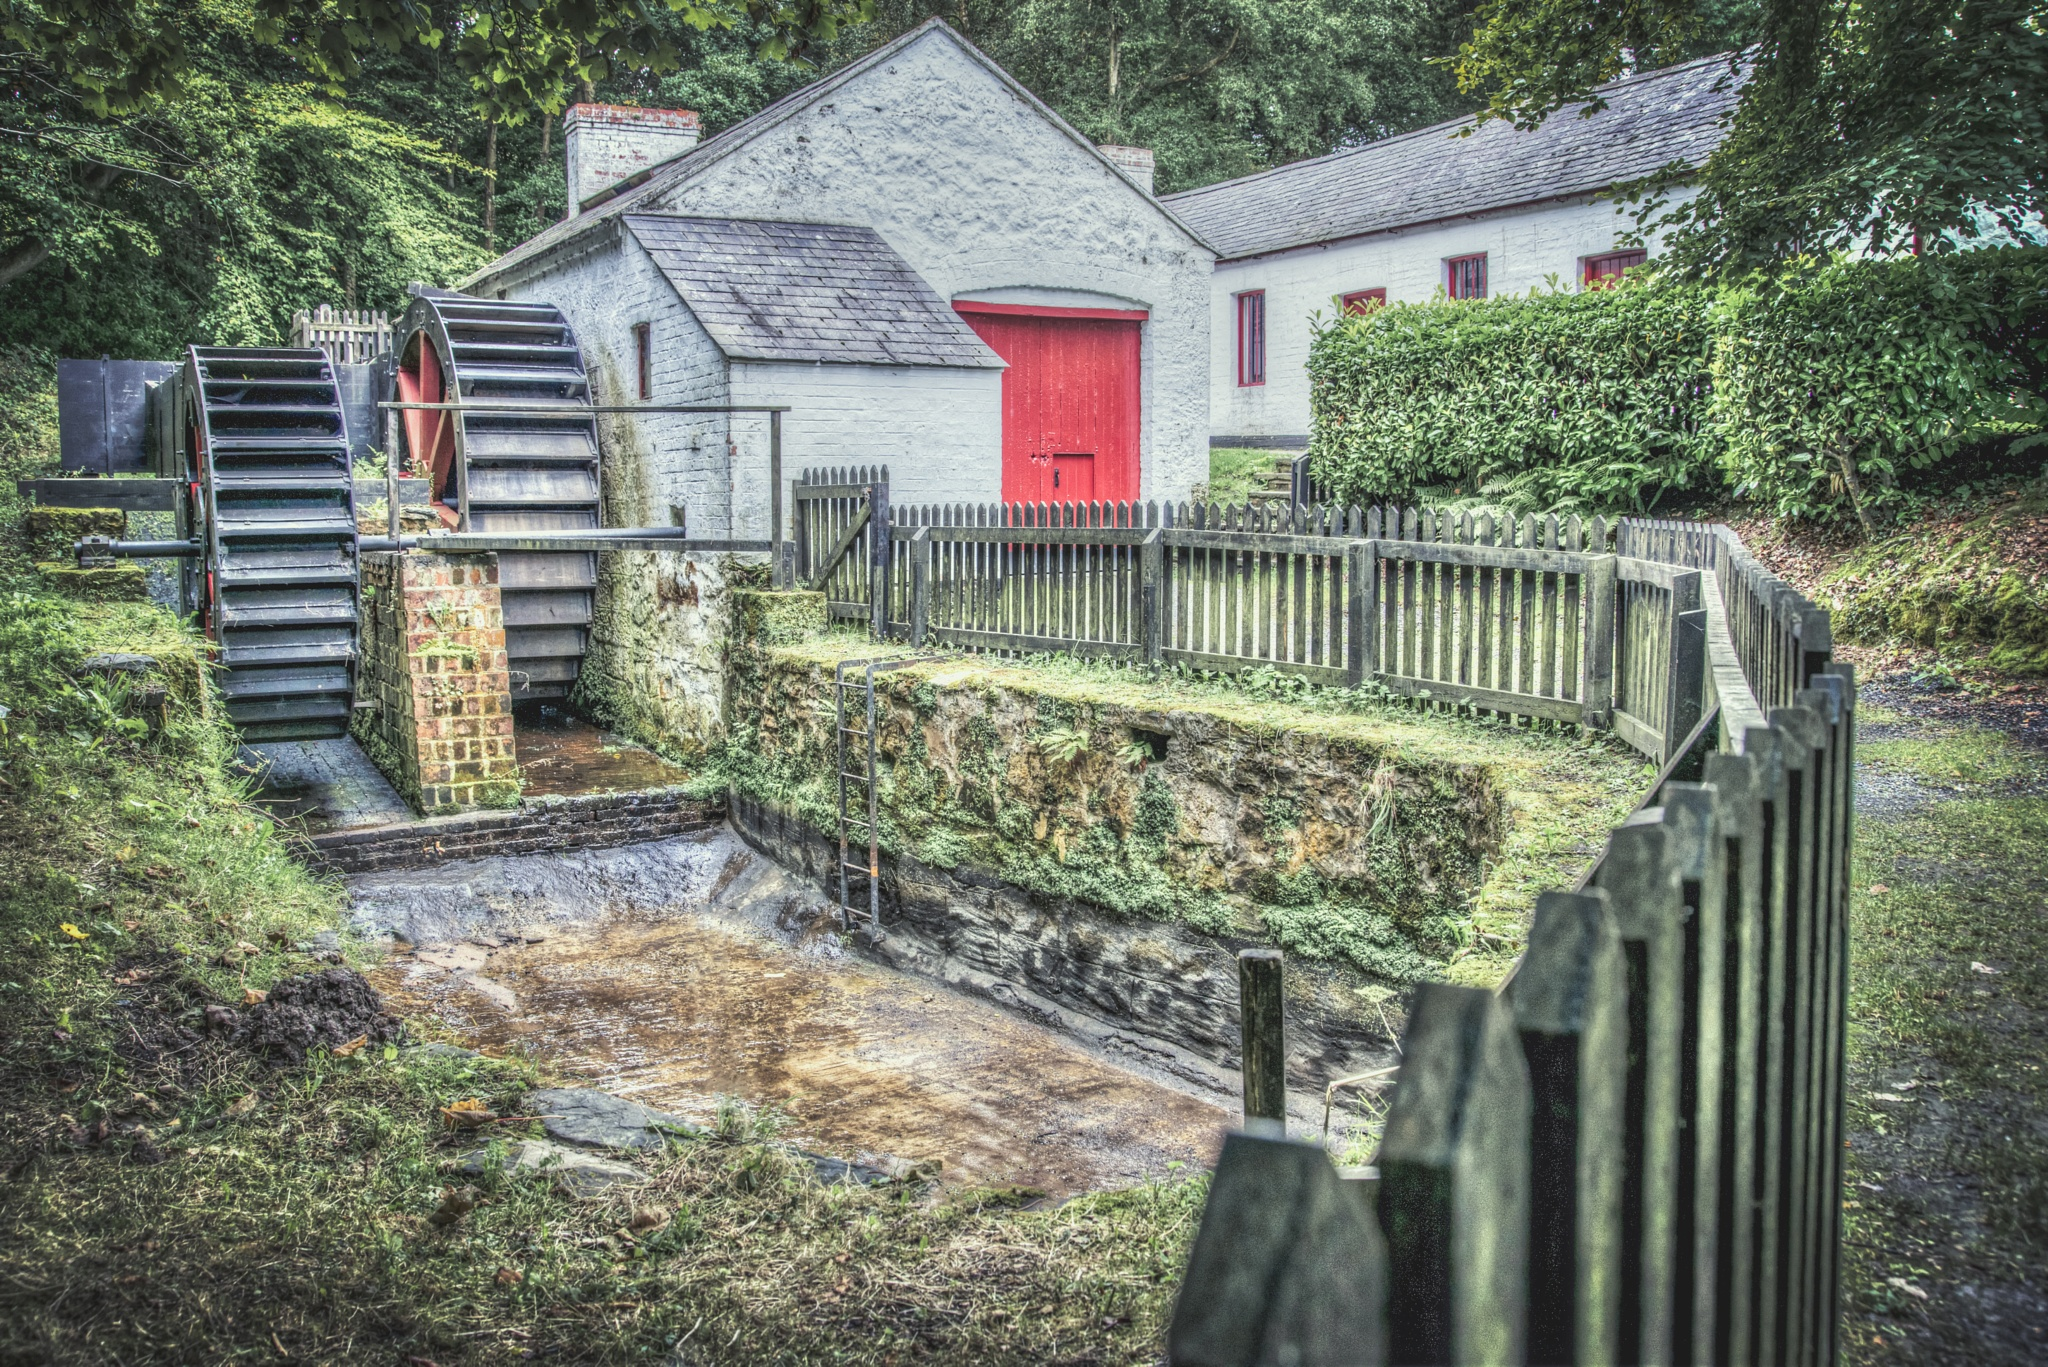 Vintage hdr watermill by Zoltan Kovacs